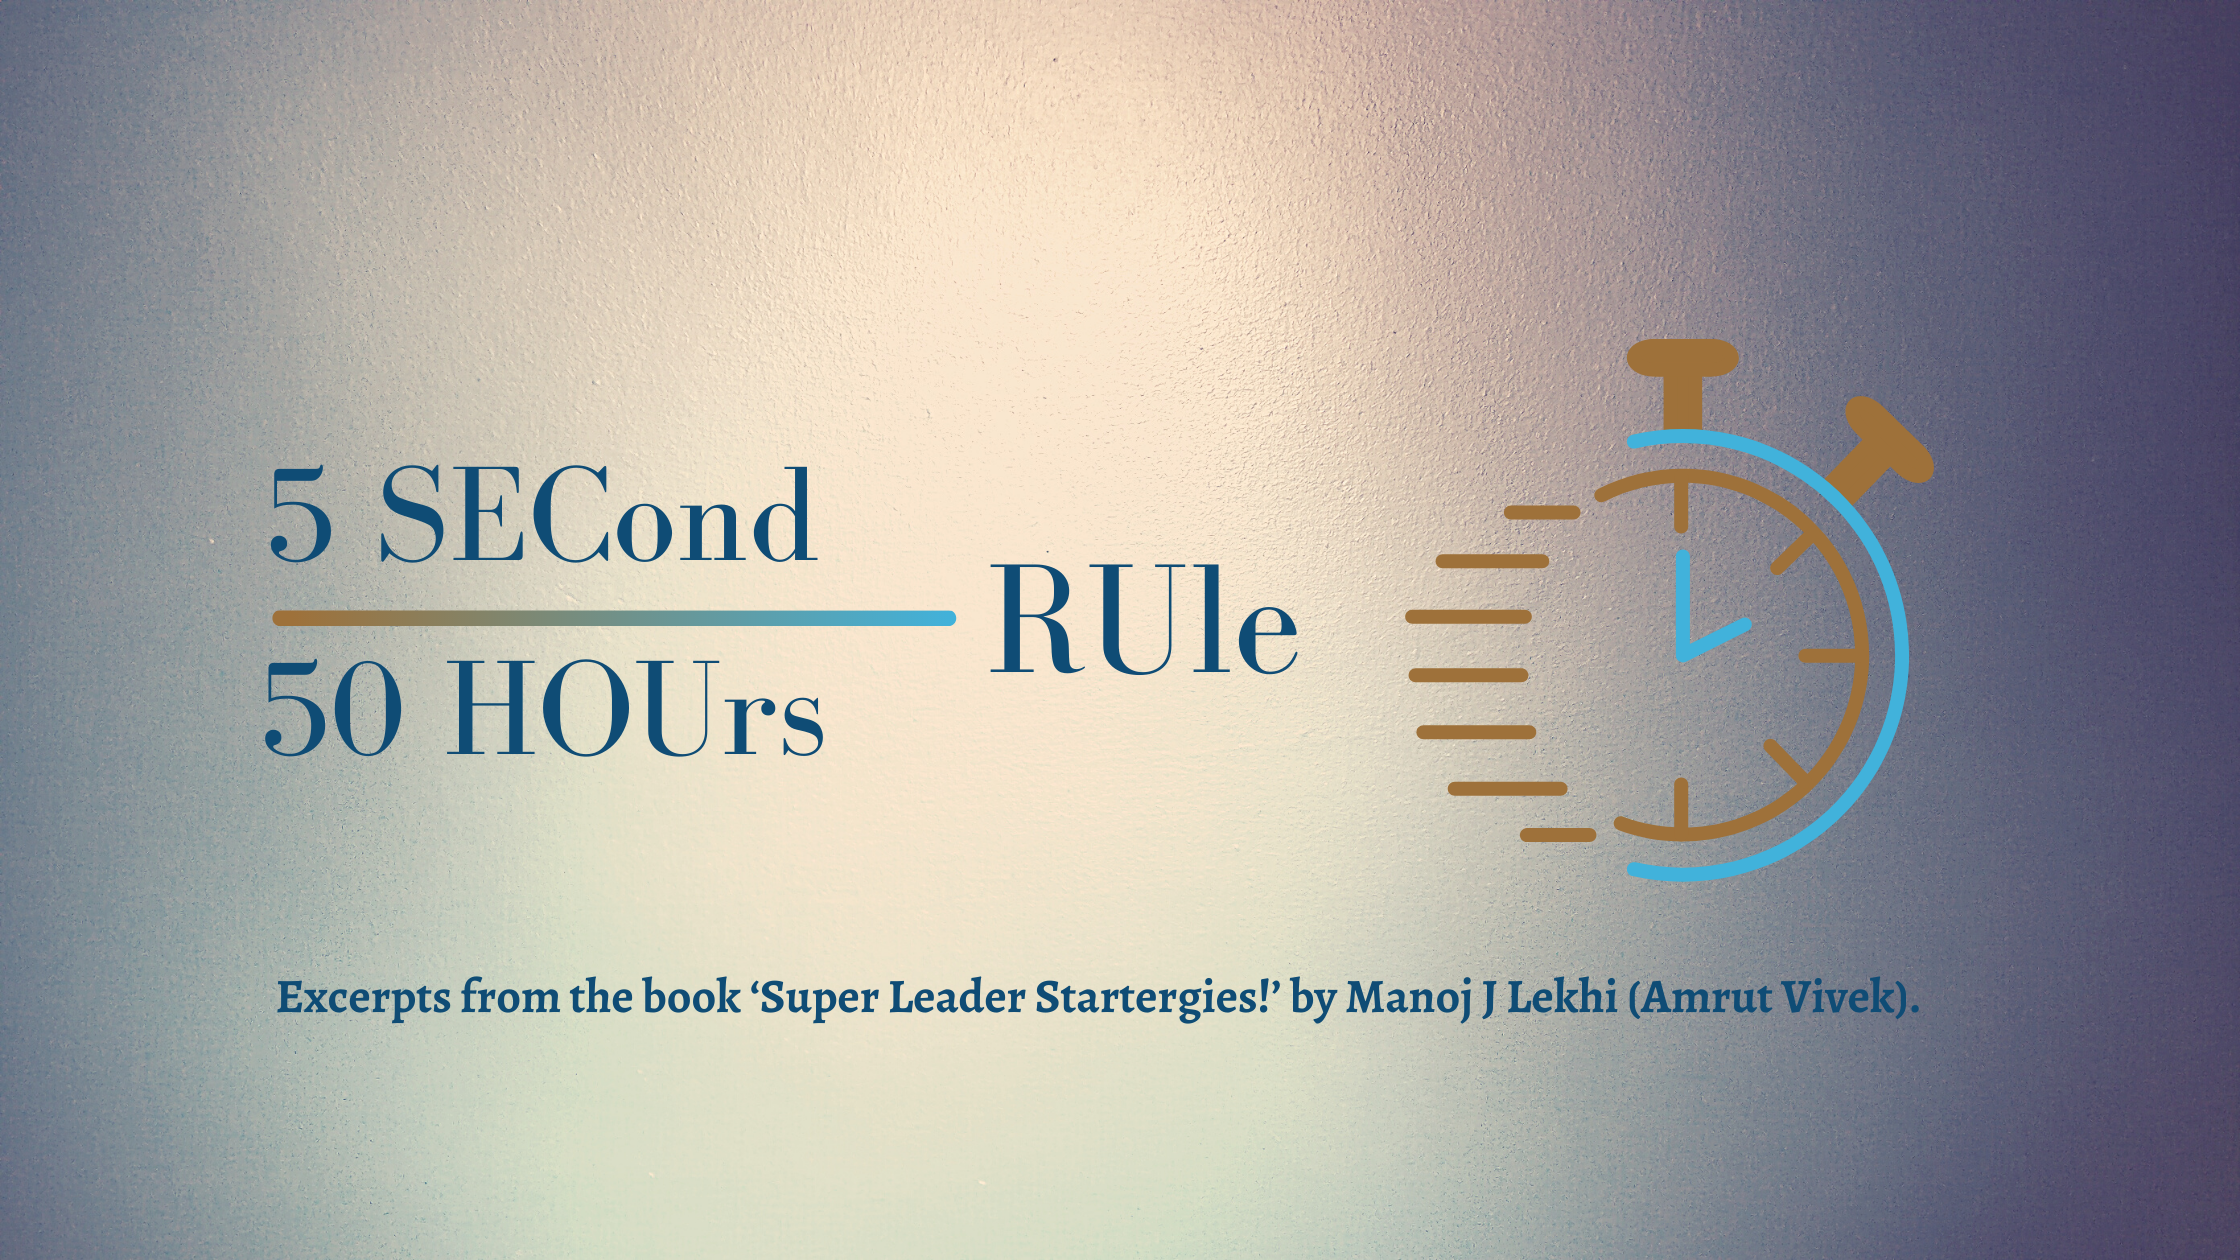 The 5 Second & 50 Hours Rule